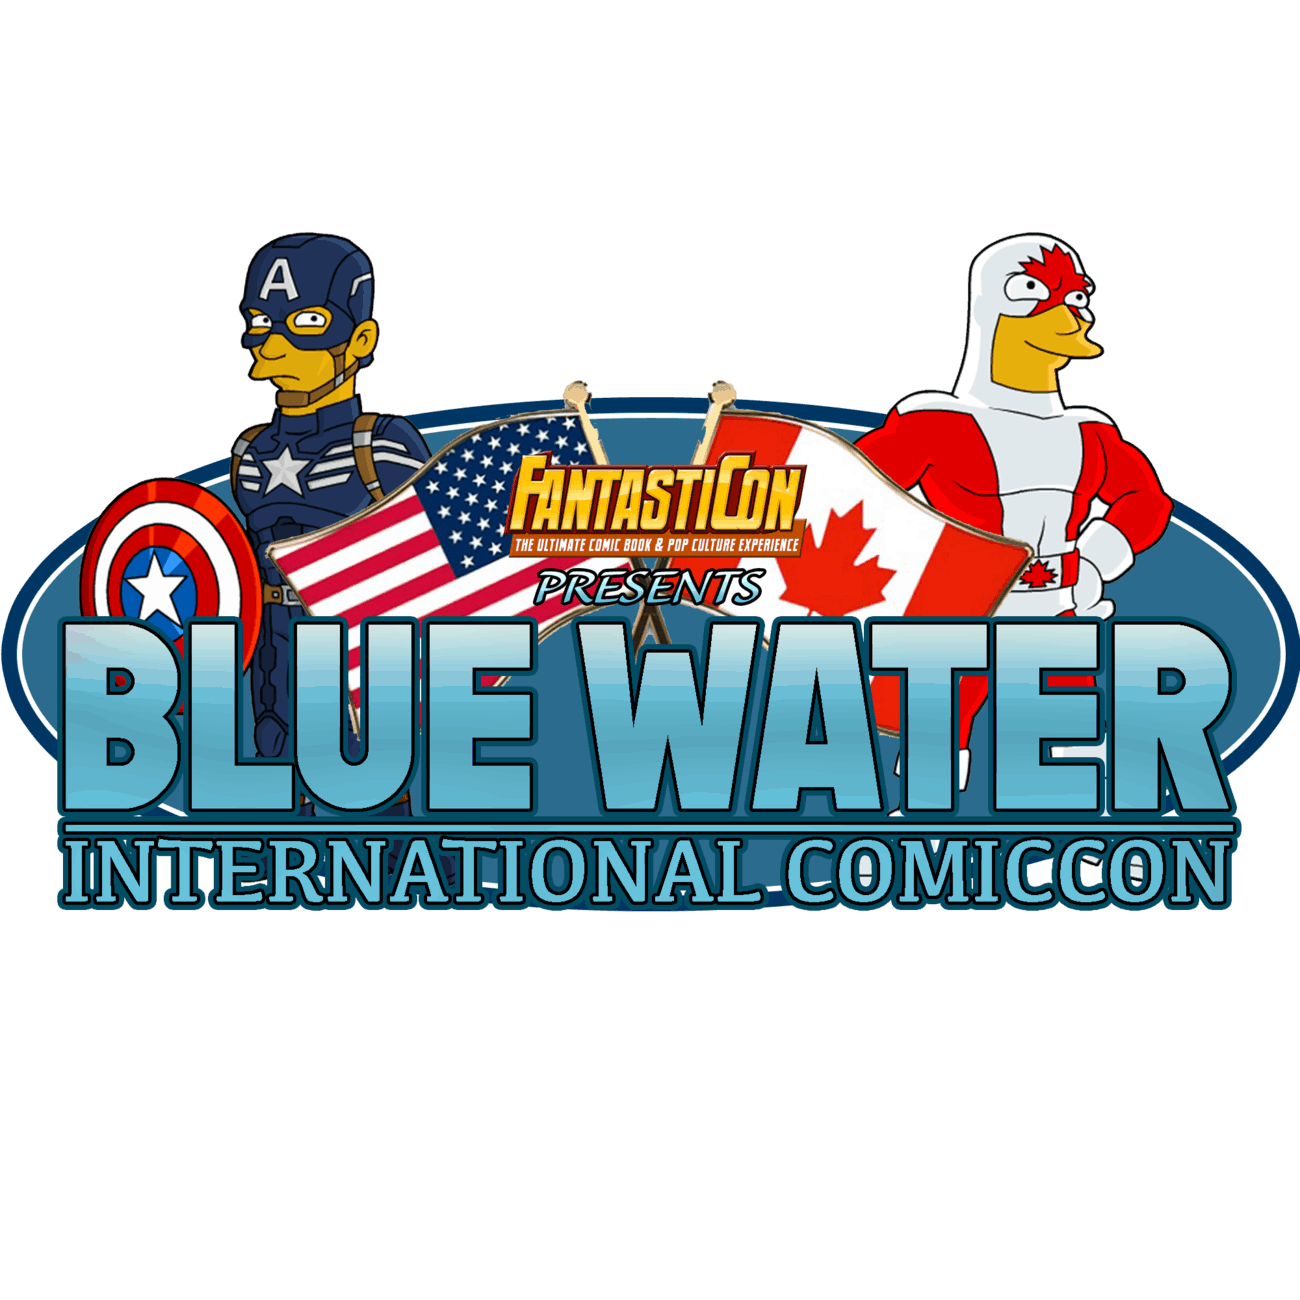 Bluewater International Comic Con